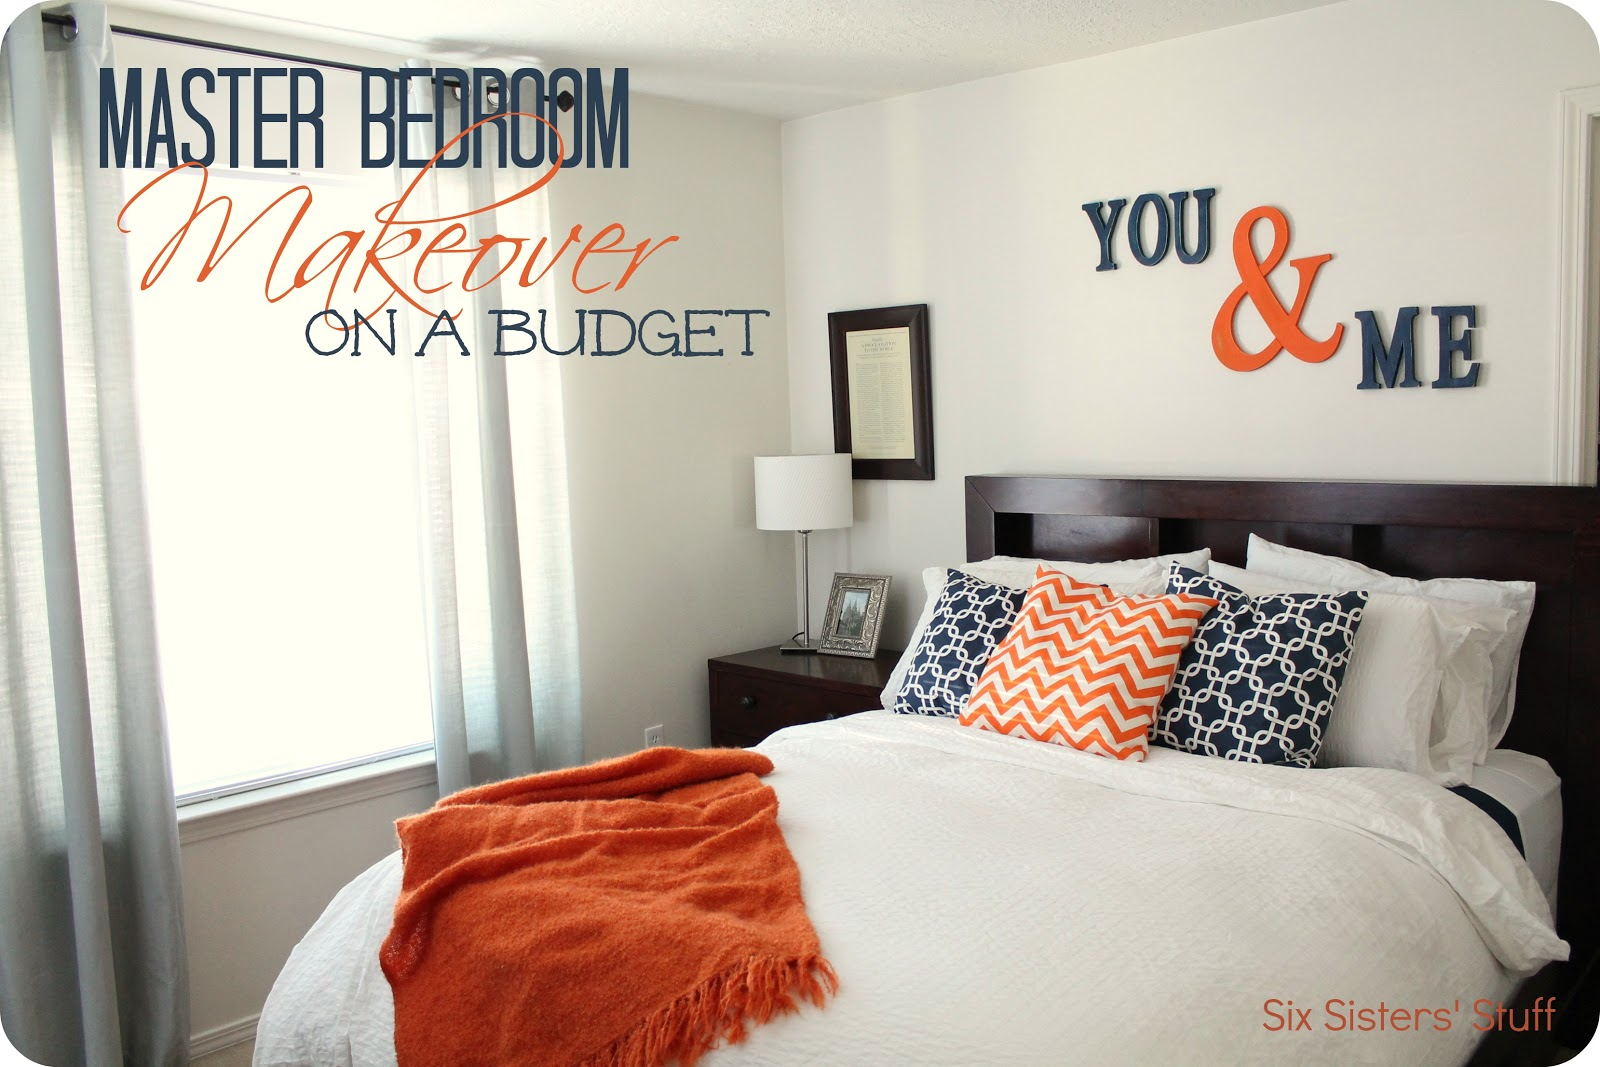 Master bedroom makeover on a budget six sisters 39 stuff How to redo a bedroom cheap